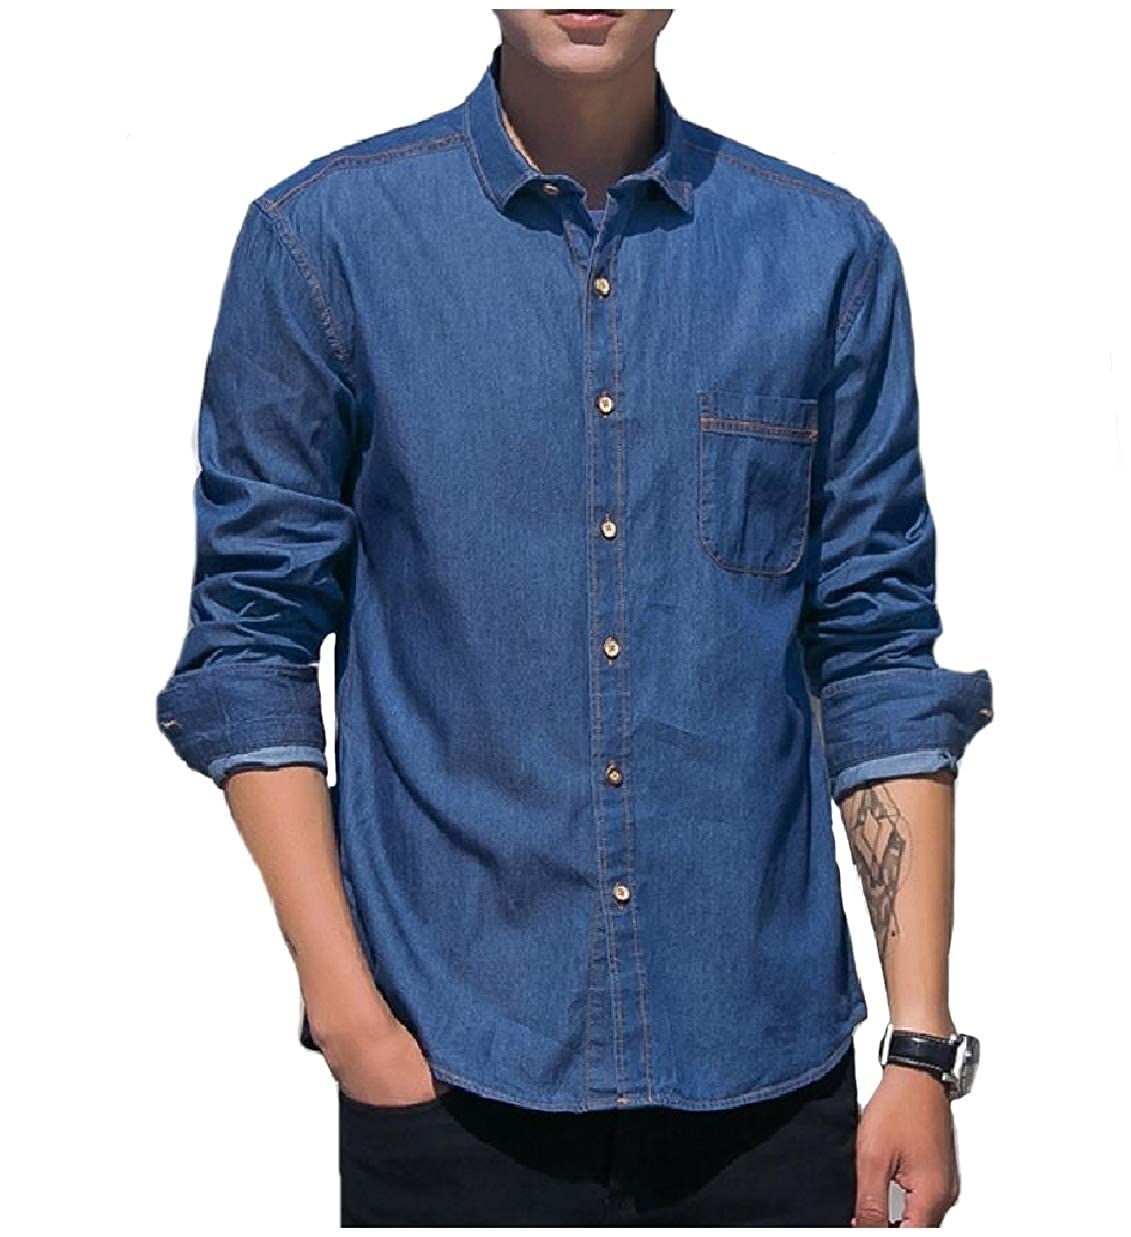 RDHOPE-Men Denim Chino Button-Front Basic Cotton Relaxed Fit Work Shirt